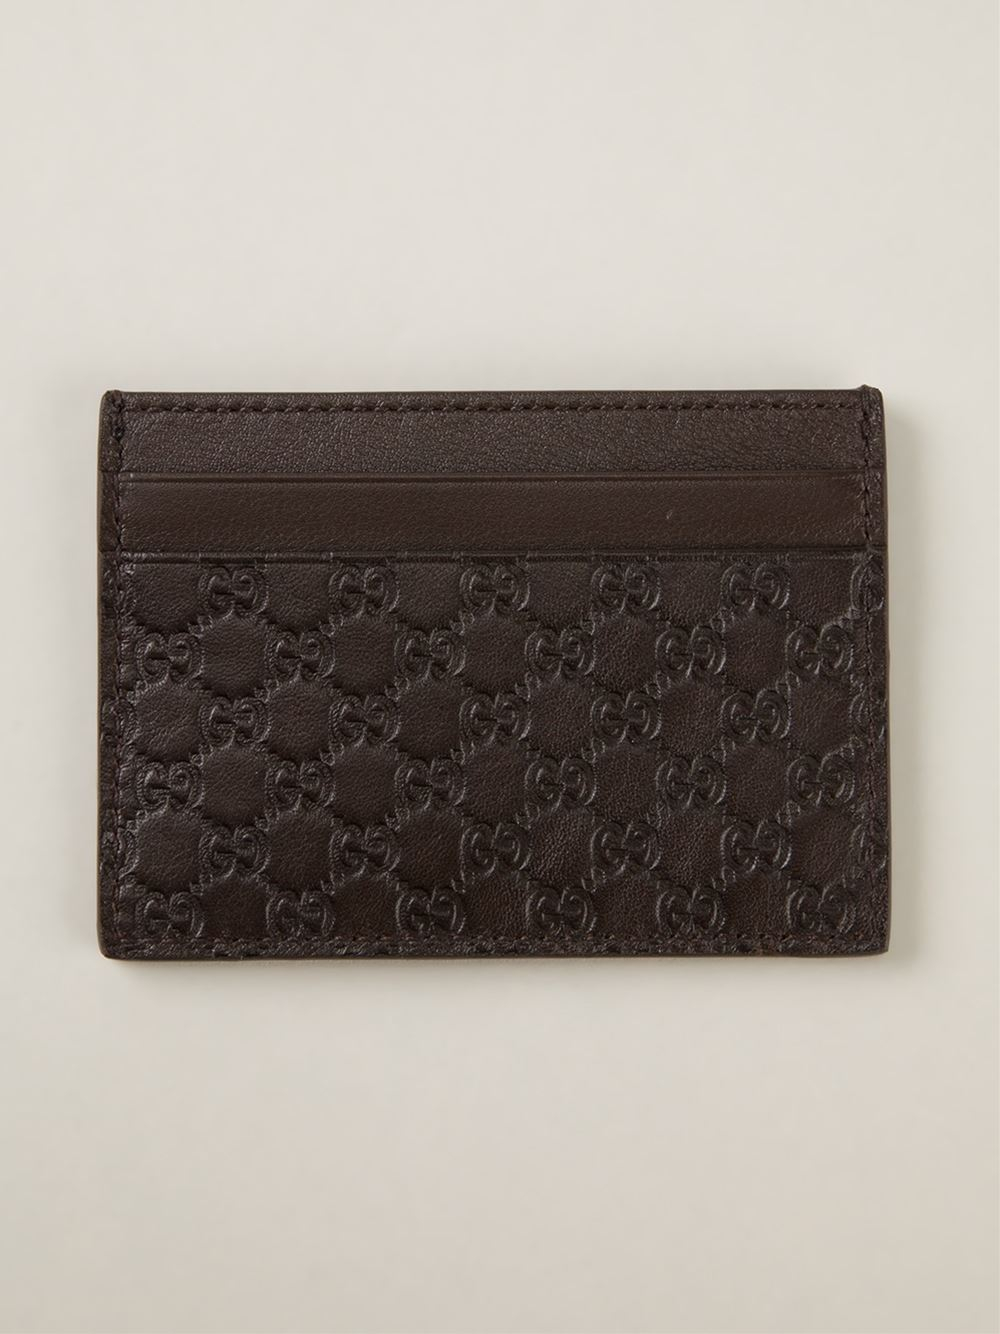 027a81a9a6e65b Gucci 'ssima' Embossed Card Holder in Brown for Men - Lyst